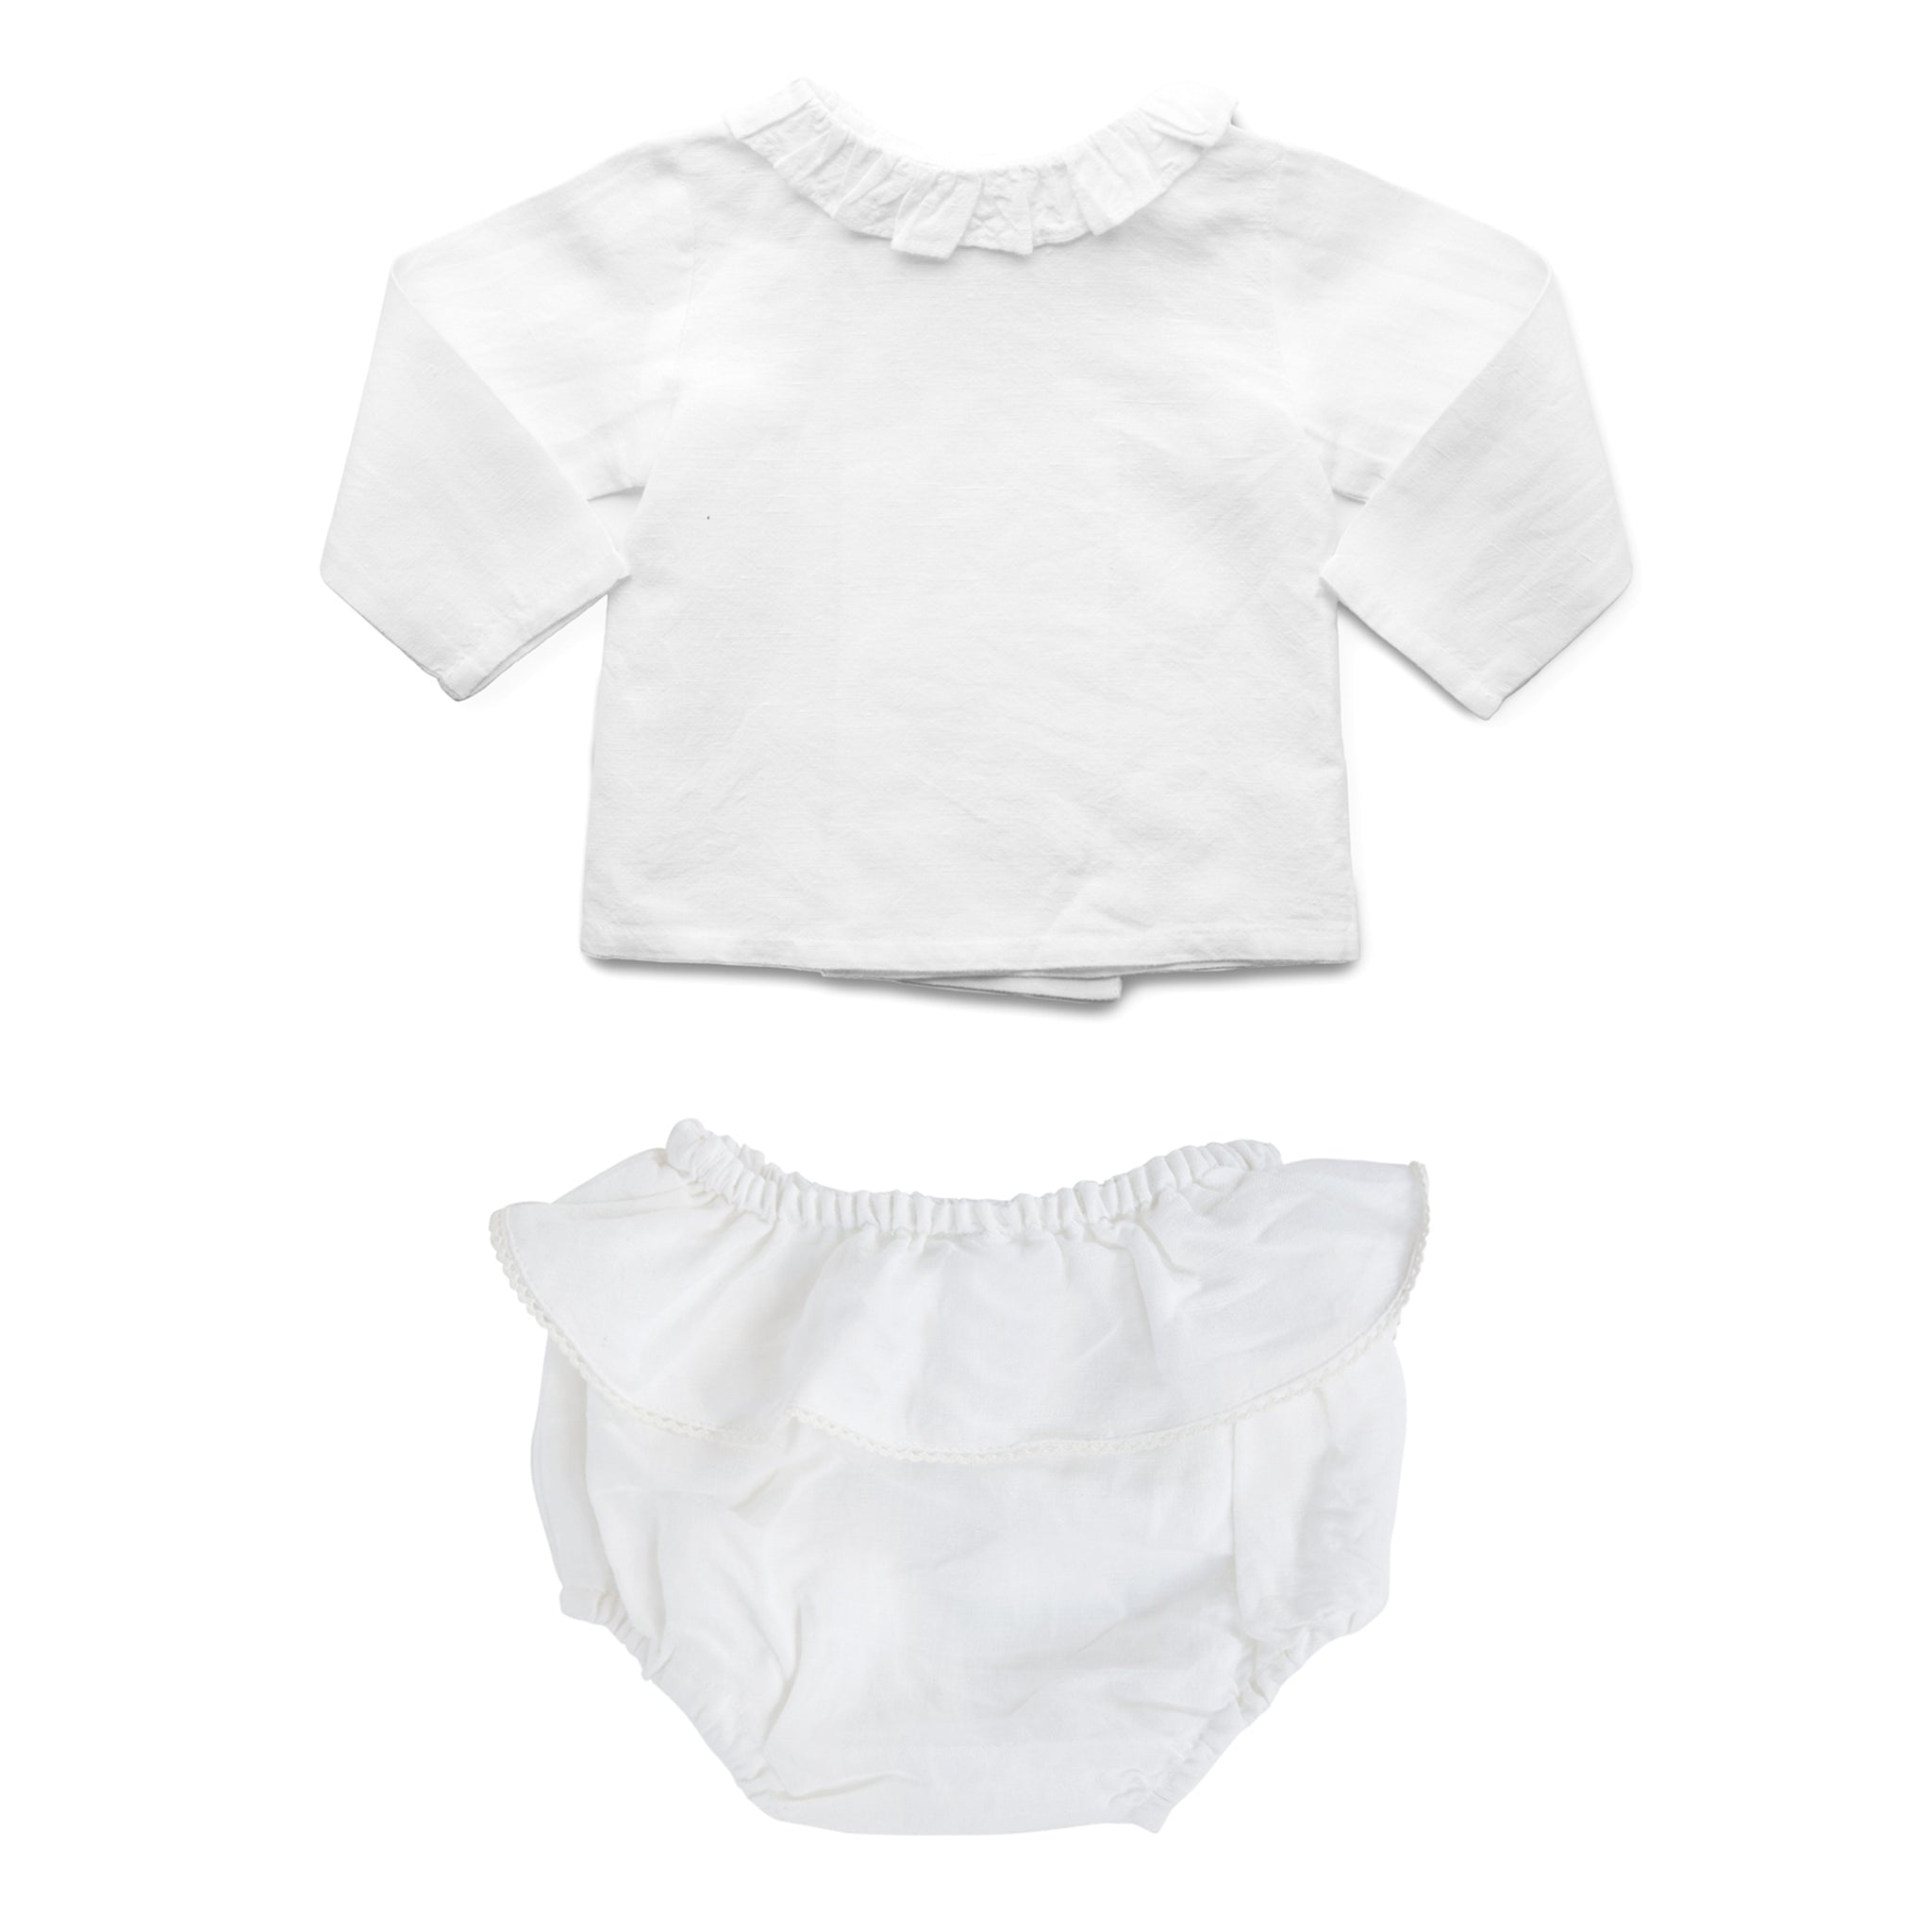 Gift set | White linen frill bloomer and white linen blouse